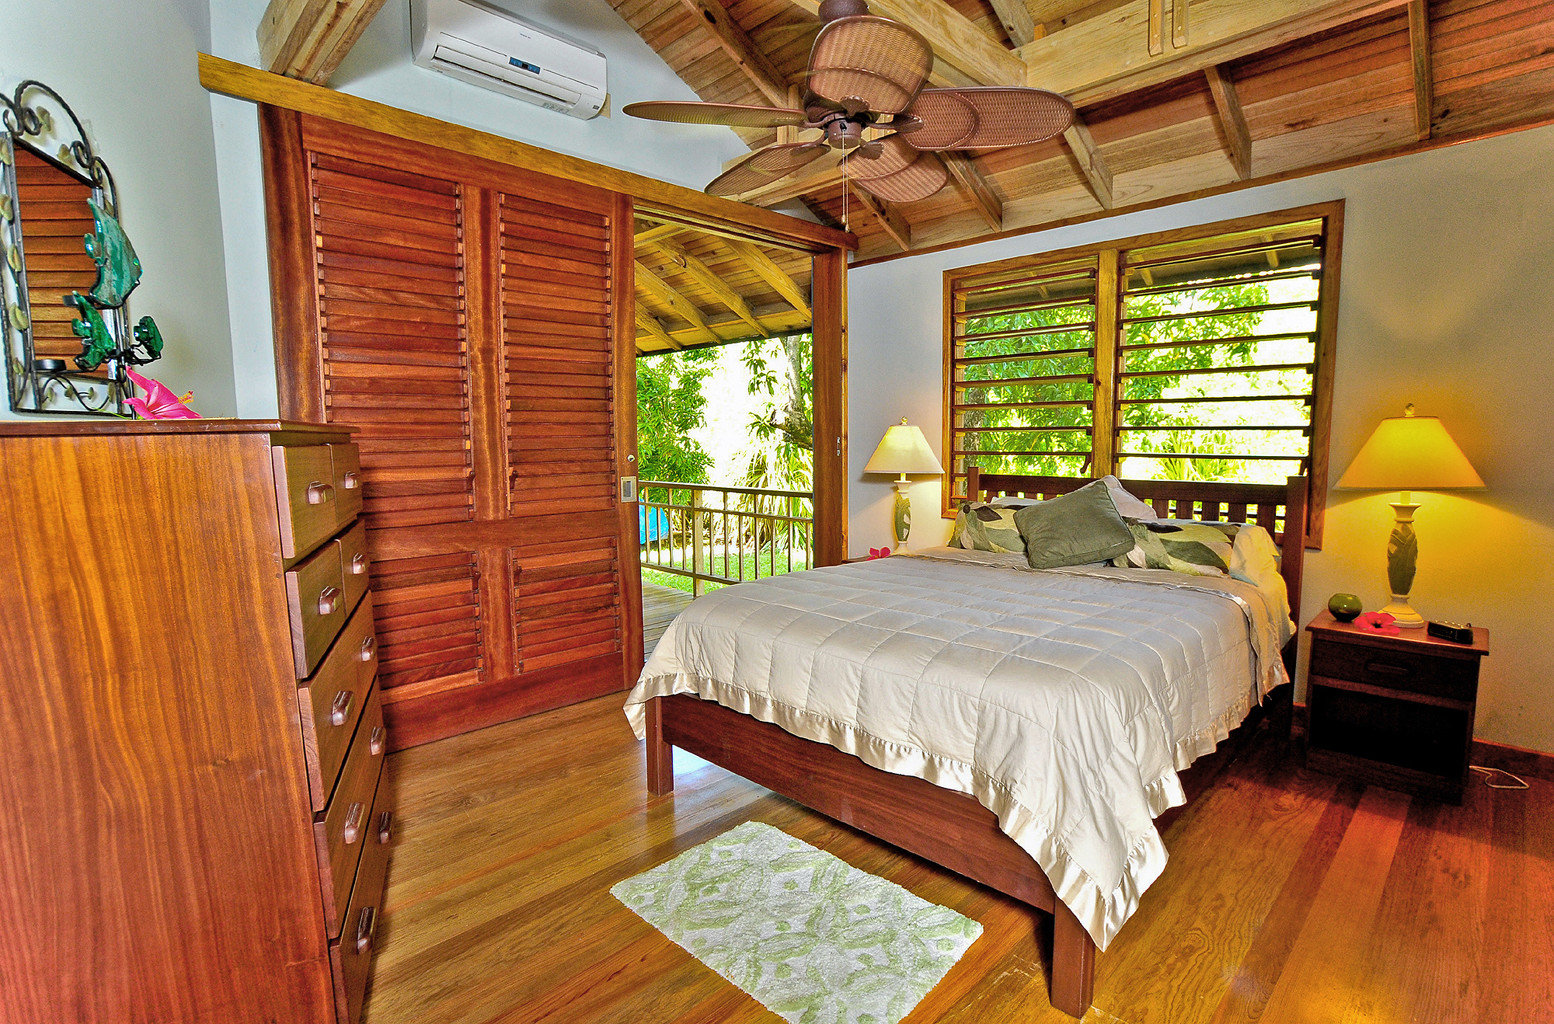 Balcony Bedroom Classic Eco Island Jungle Villa property cottage home hardwood wooden Suite farmhouse